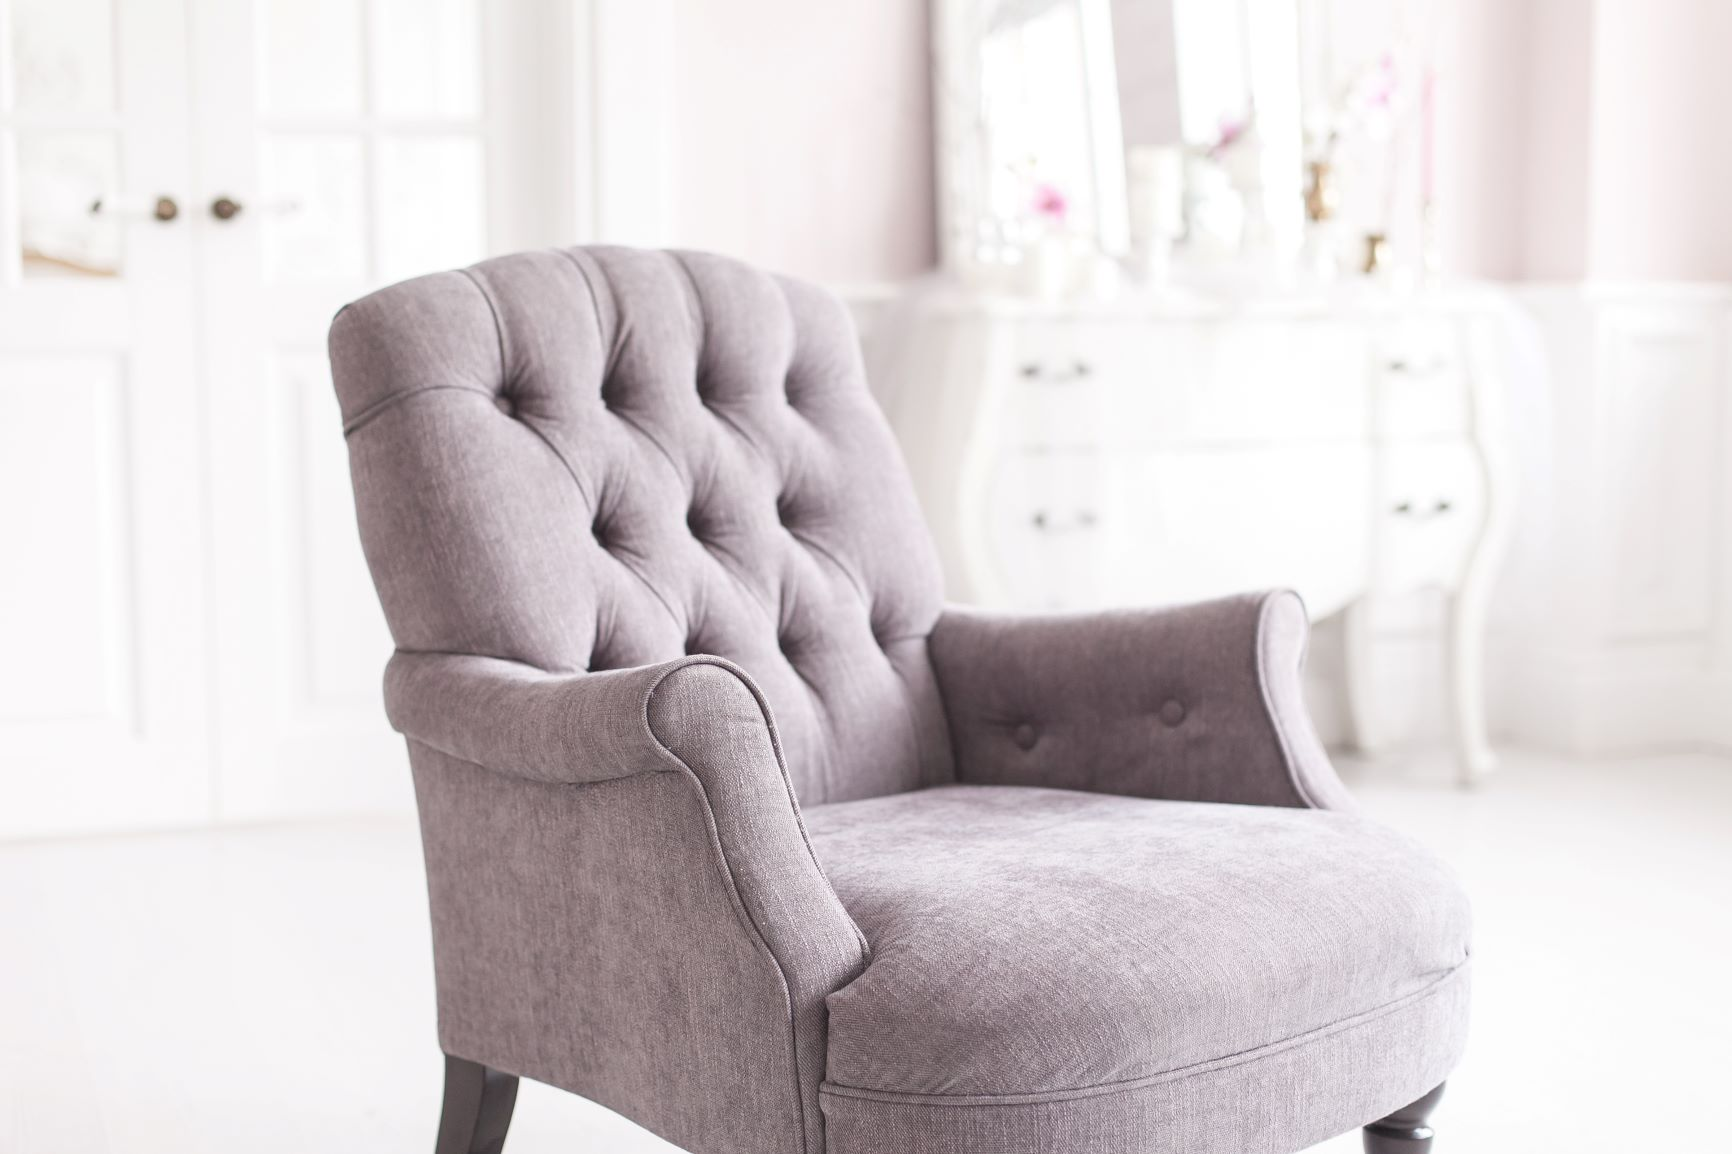 Turning your upholstery hobby into a profitable business